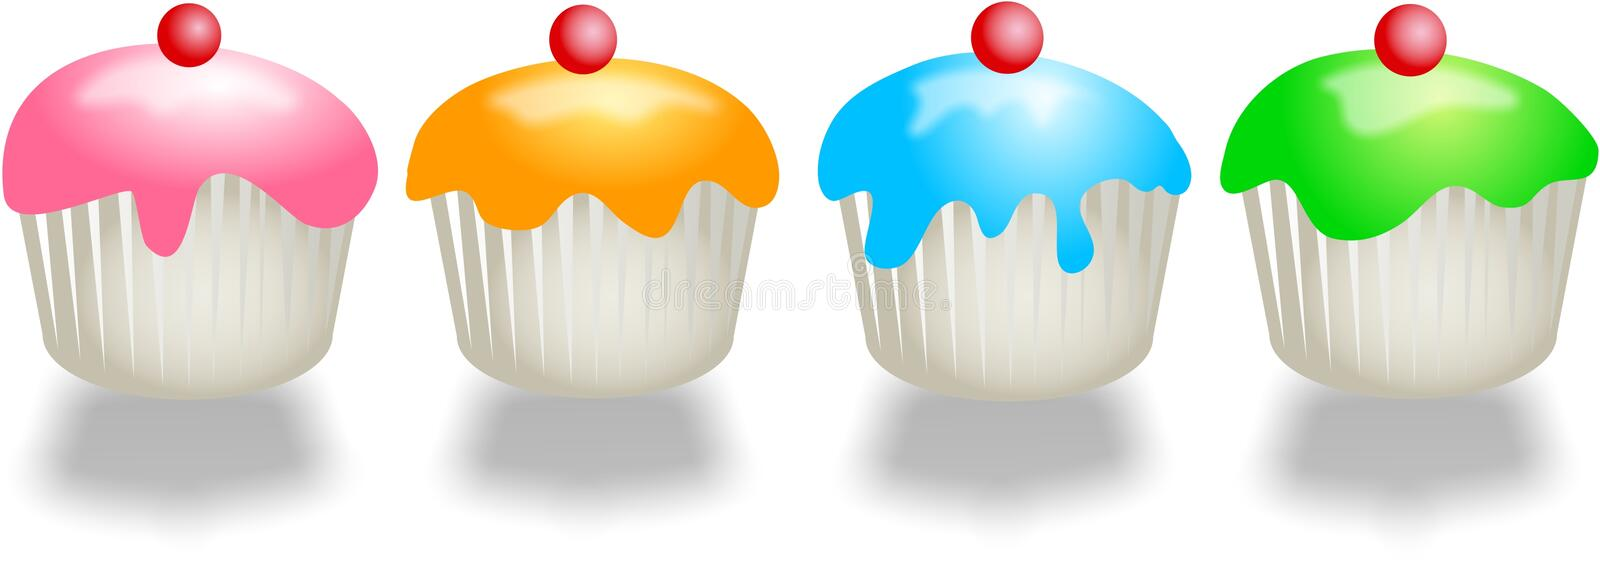 Coloured Buns stock illustration